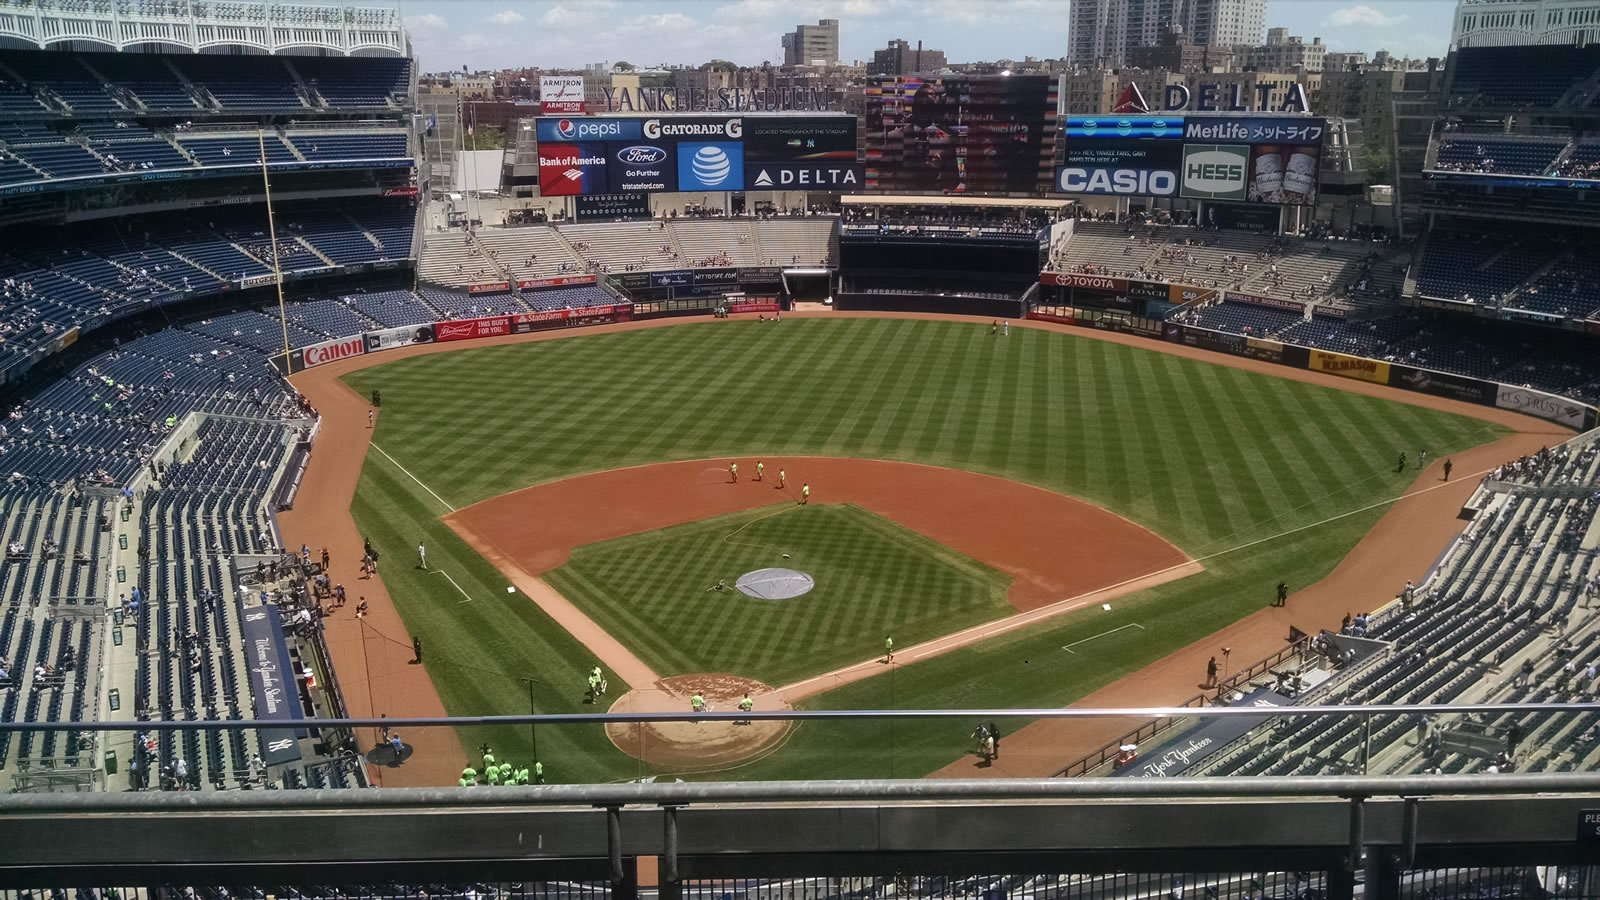 New York Yankees Seat View for Yankee Stadium Section 420A, Row 3, Seat 5